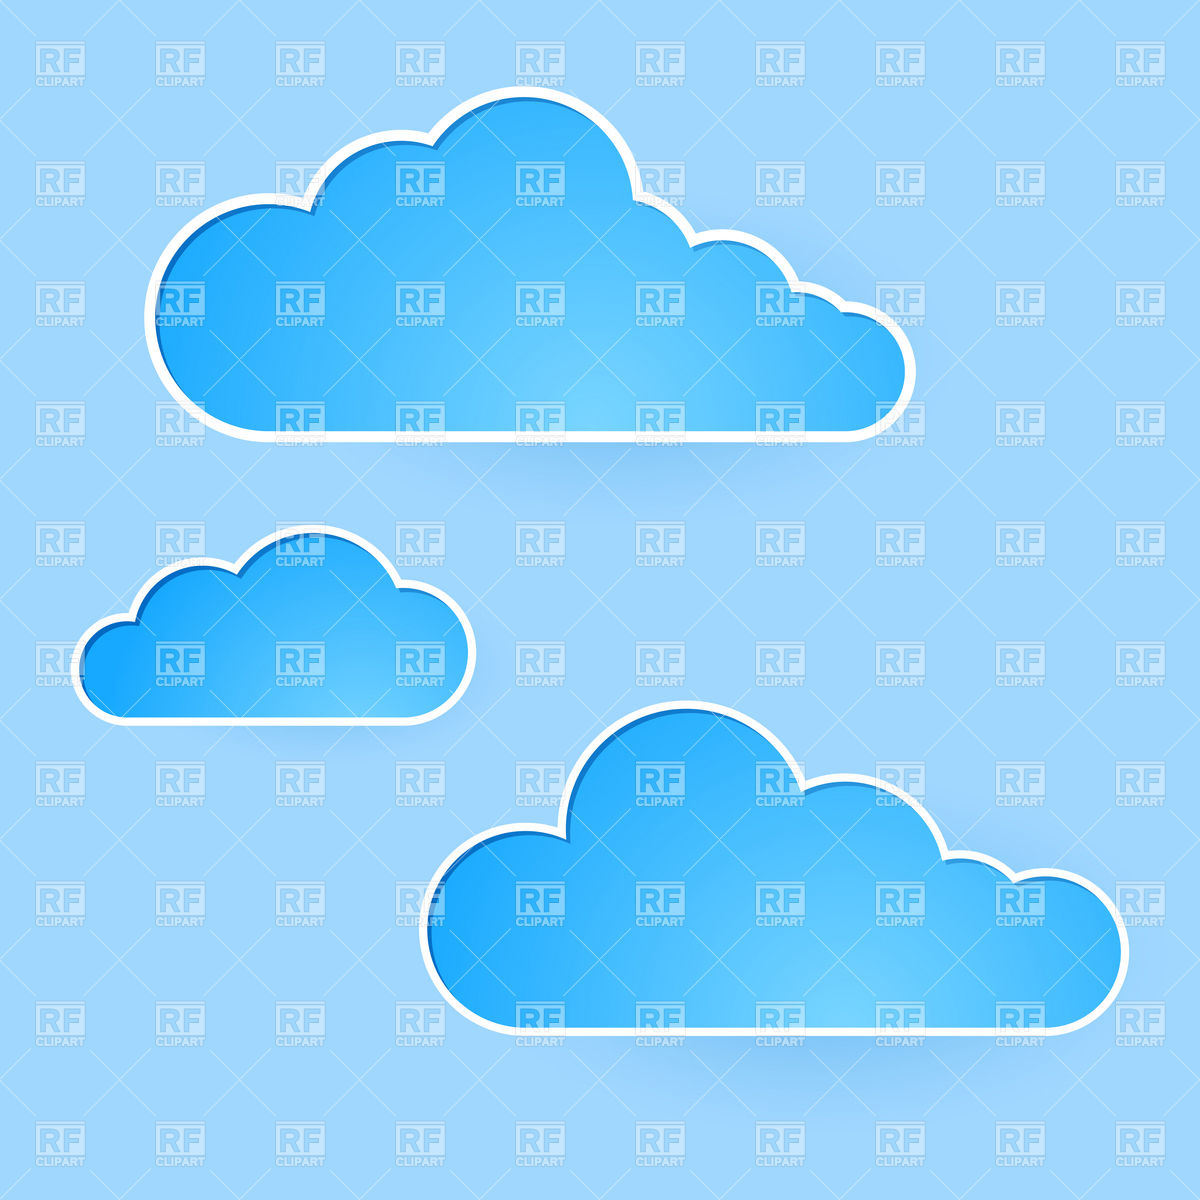 Cartoon sky with simple clouds, Backgrounds, Textures, Abstract ...: www.clipartbest.com/sky-cartoon